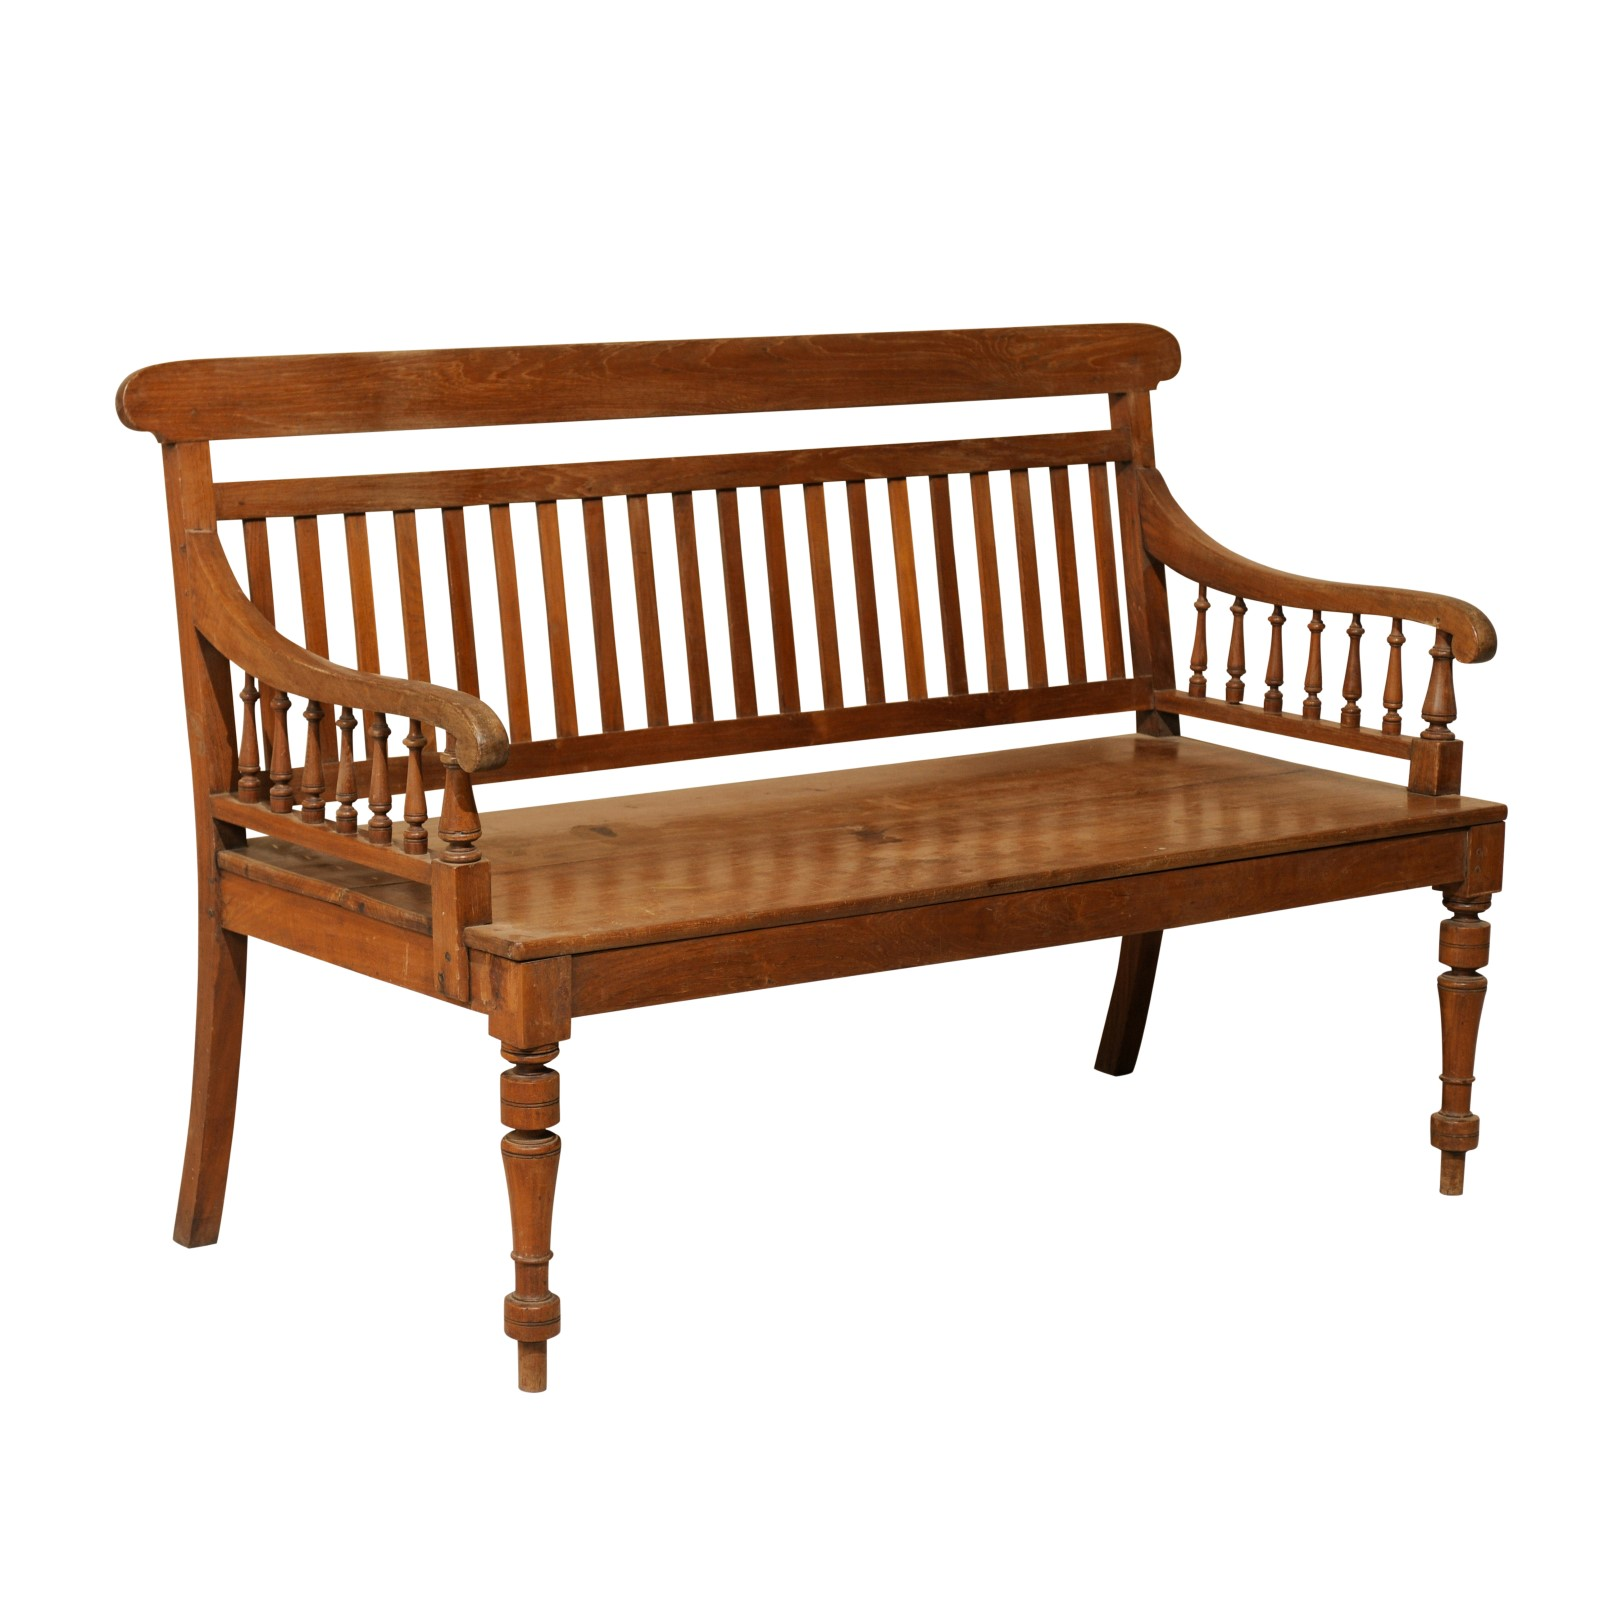 British Colonial Teak Wood Bench | 169 | A. Tyner Antiques